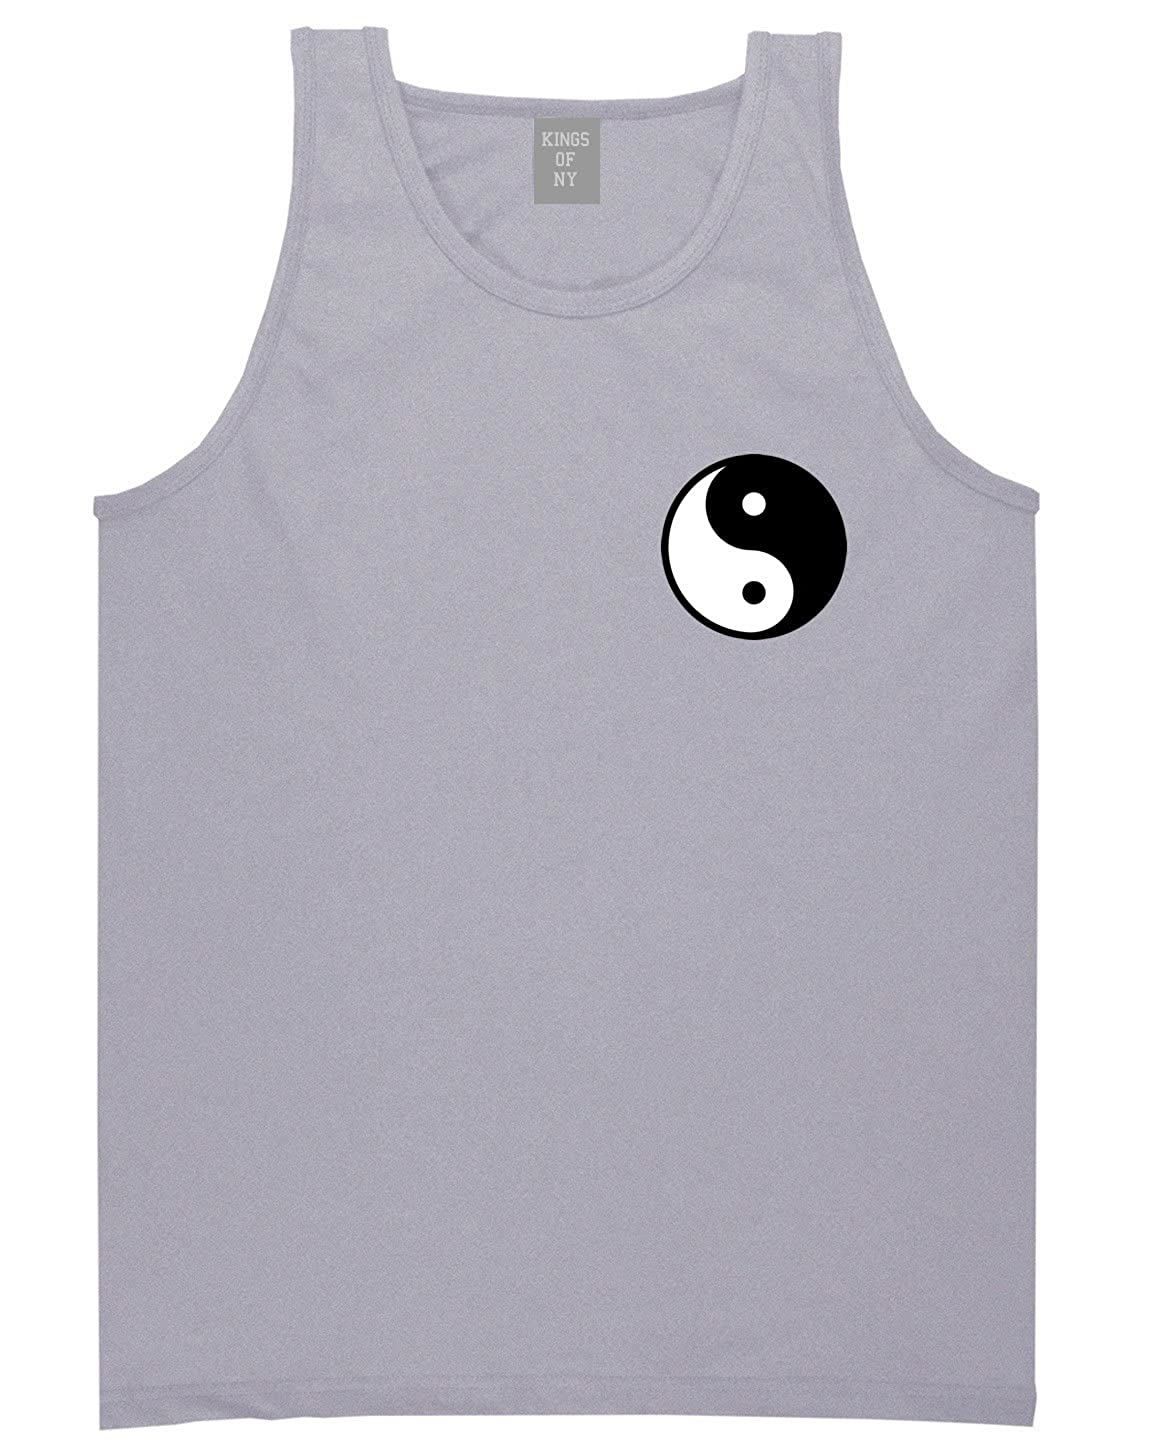 Kings Of NY Yin and Yang Chest Graphic Mens Tank Top